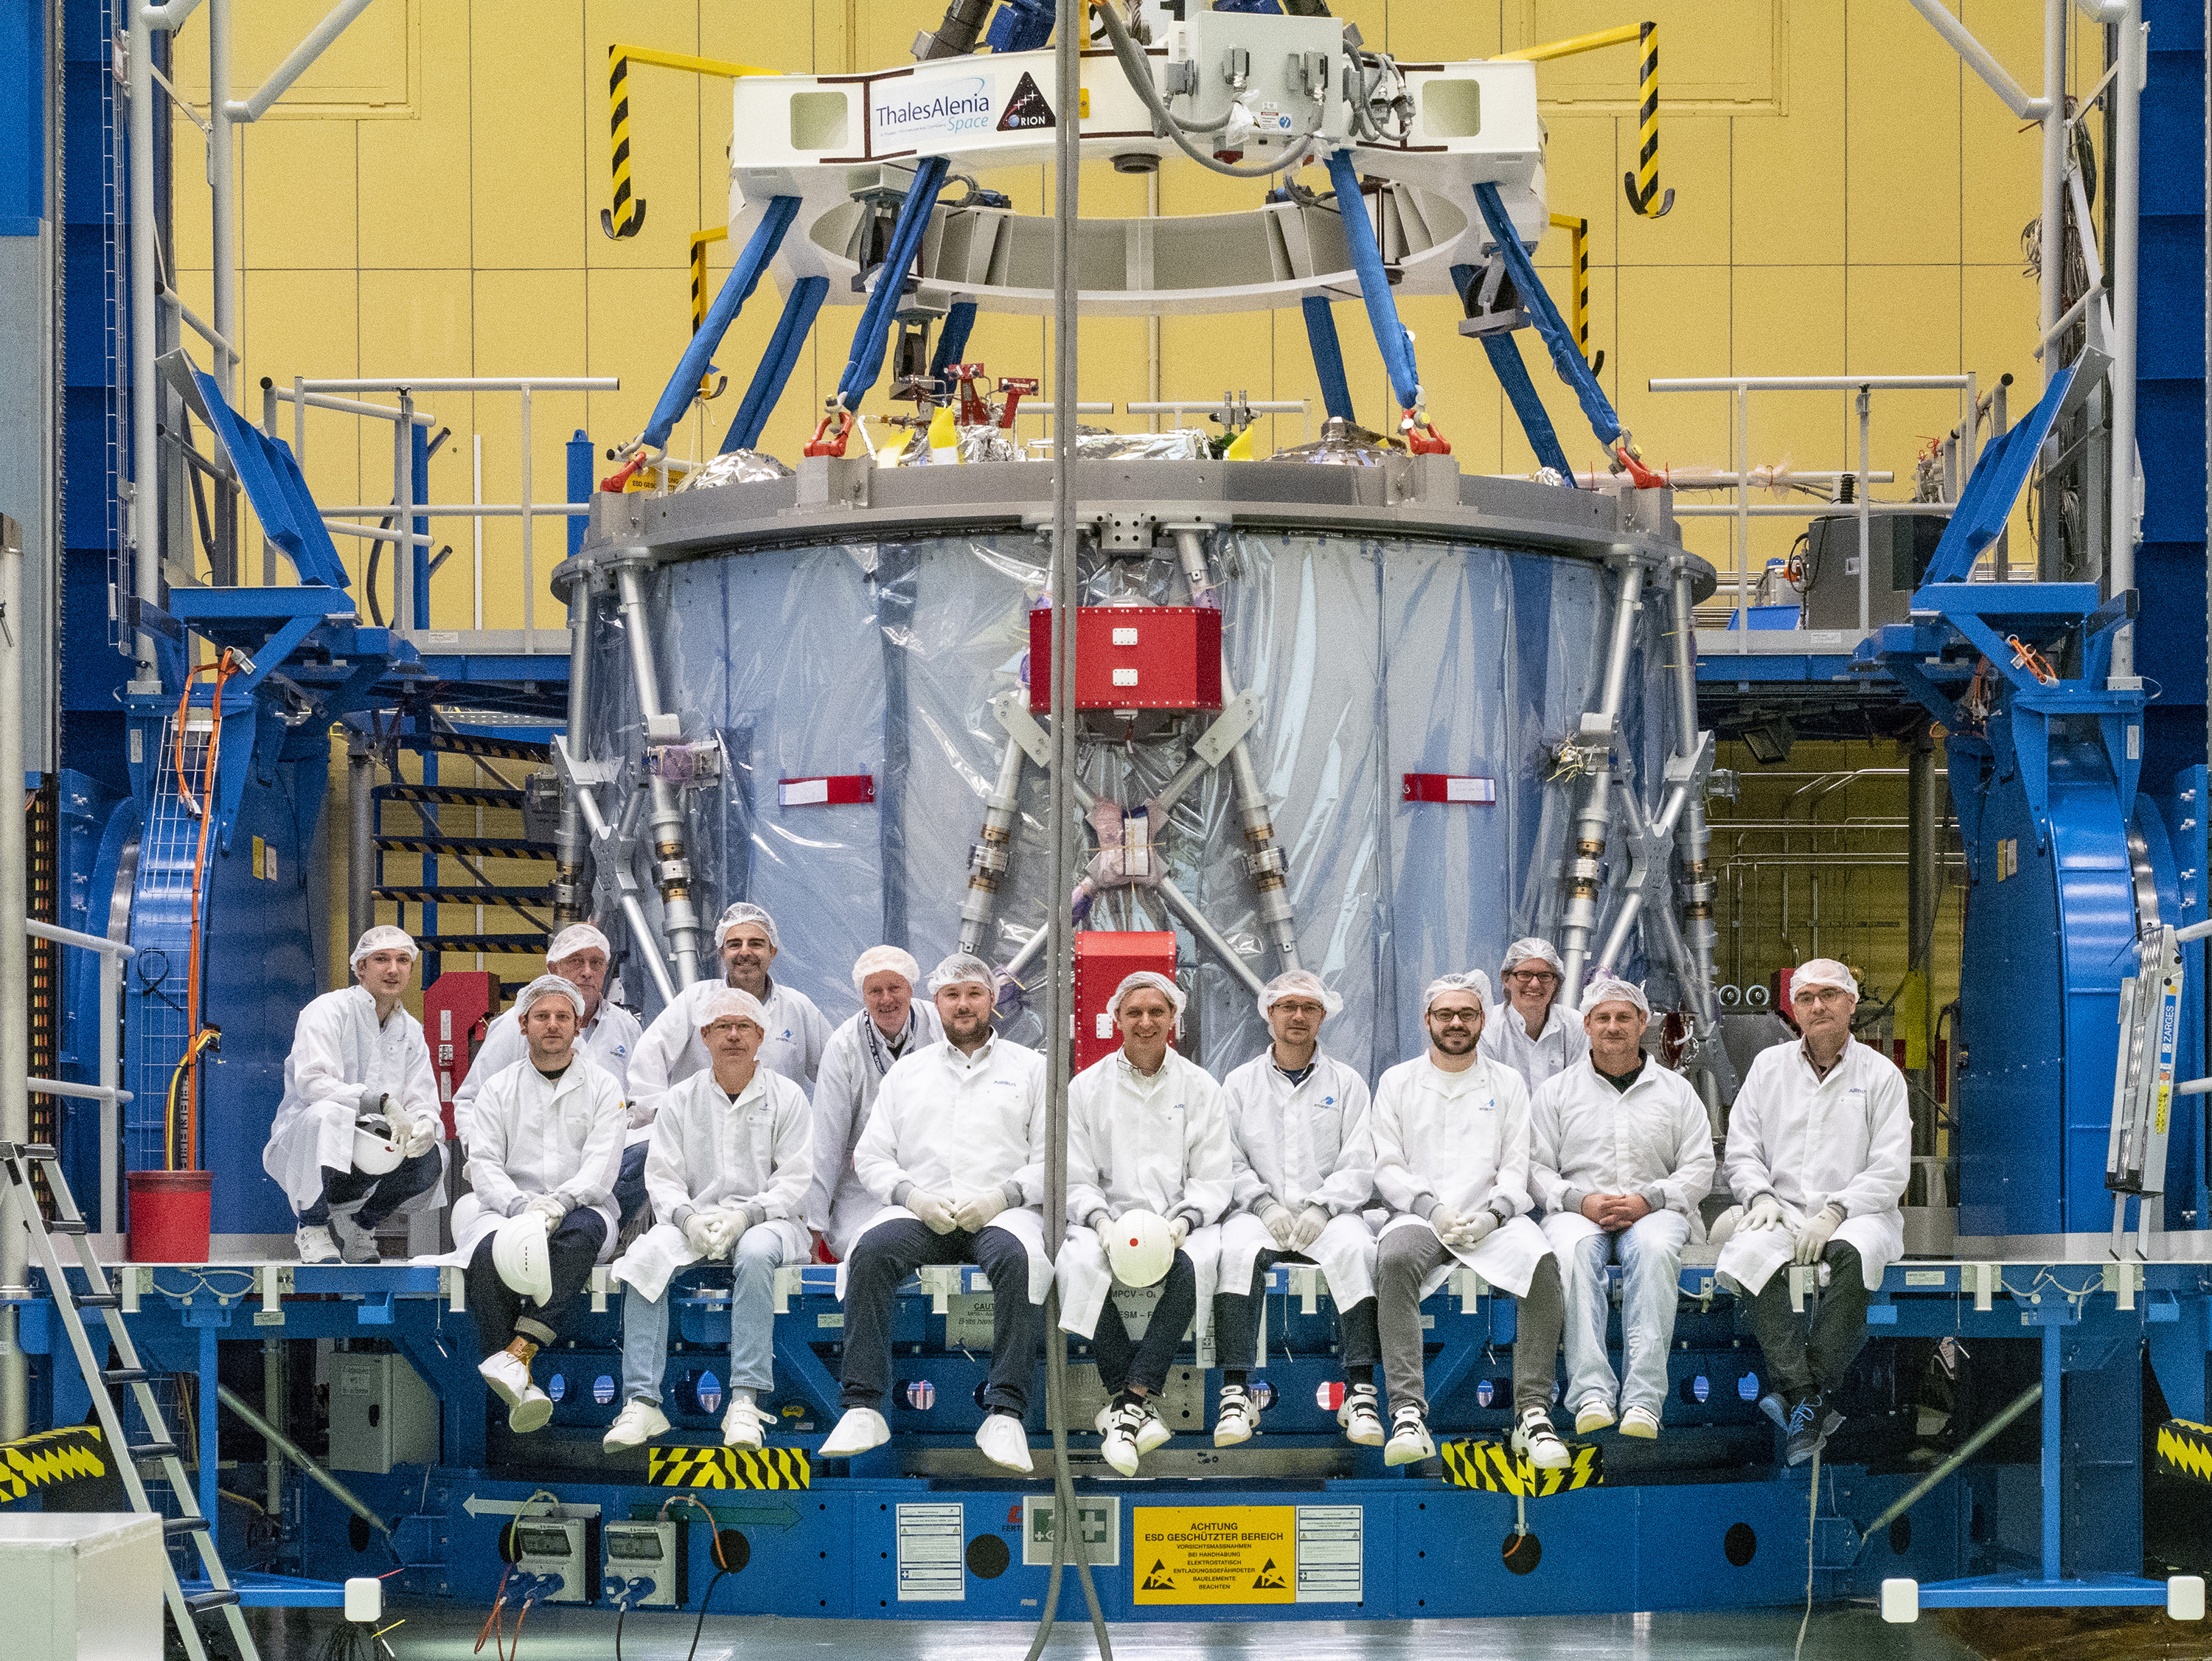 Orion's European Service Module to Arrive for First Mission